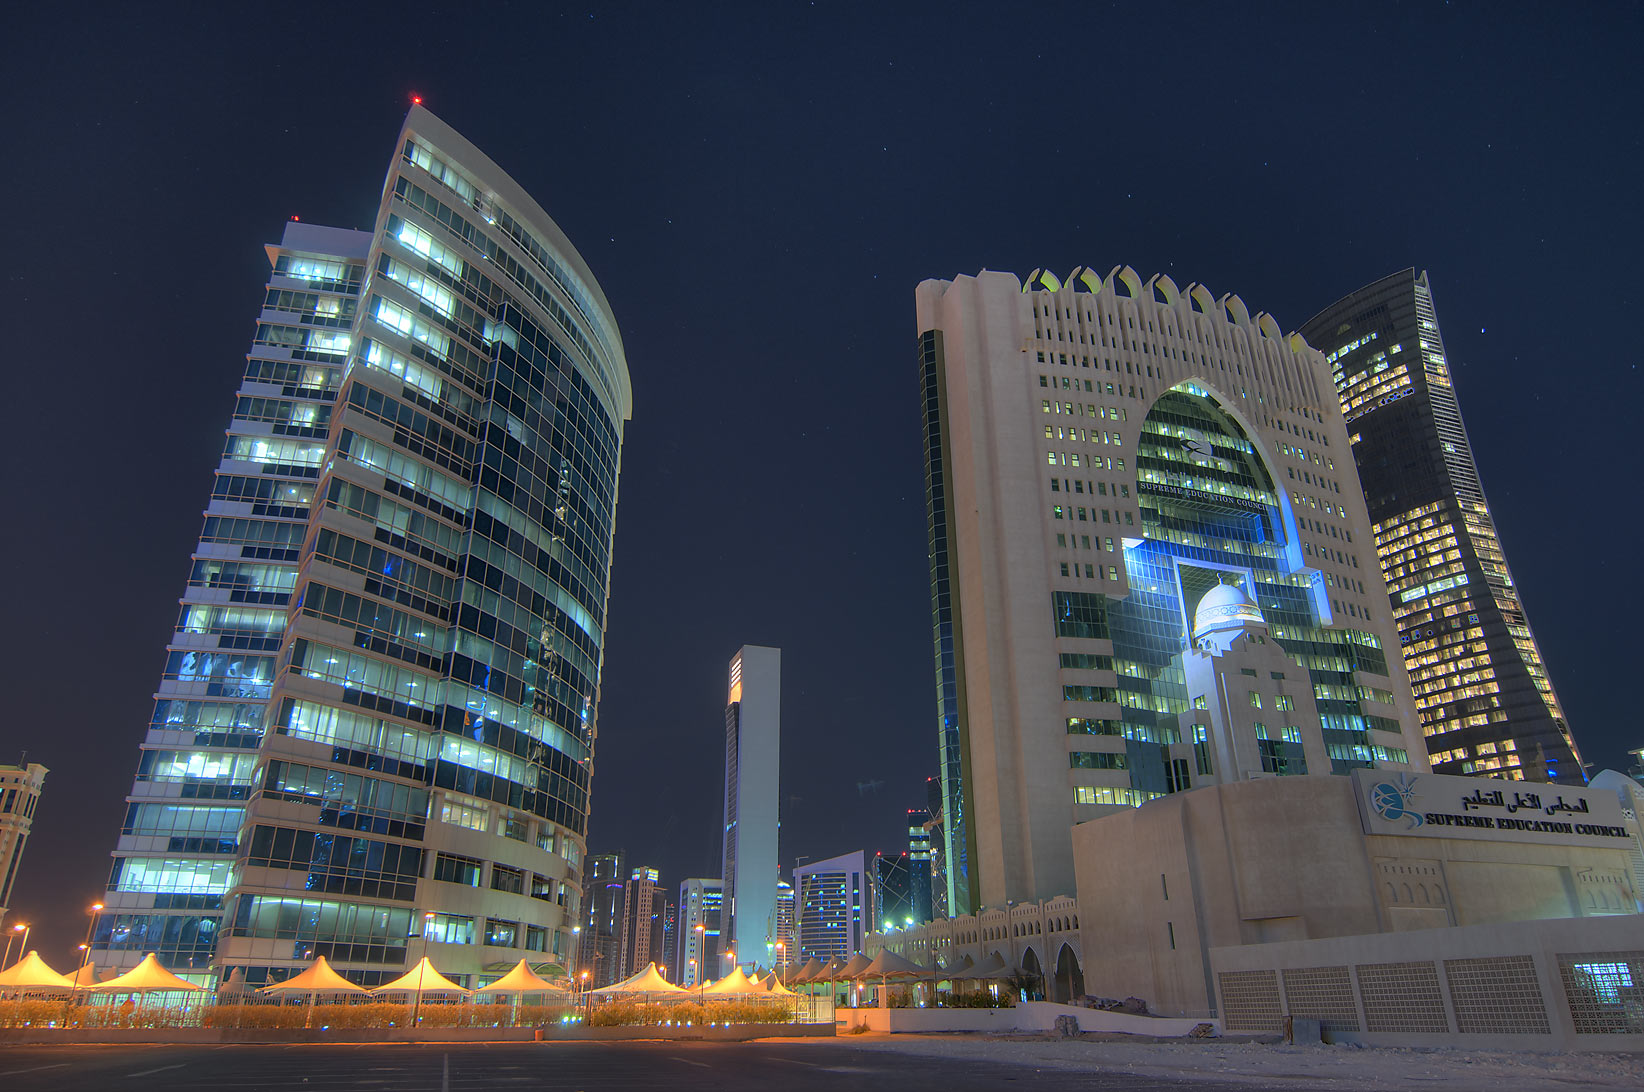 Al Wosail Tower and Ministry of Education in West Bay. Doha, Qatar